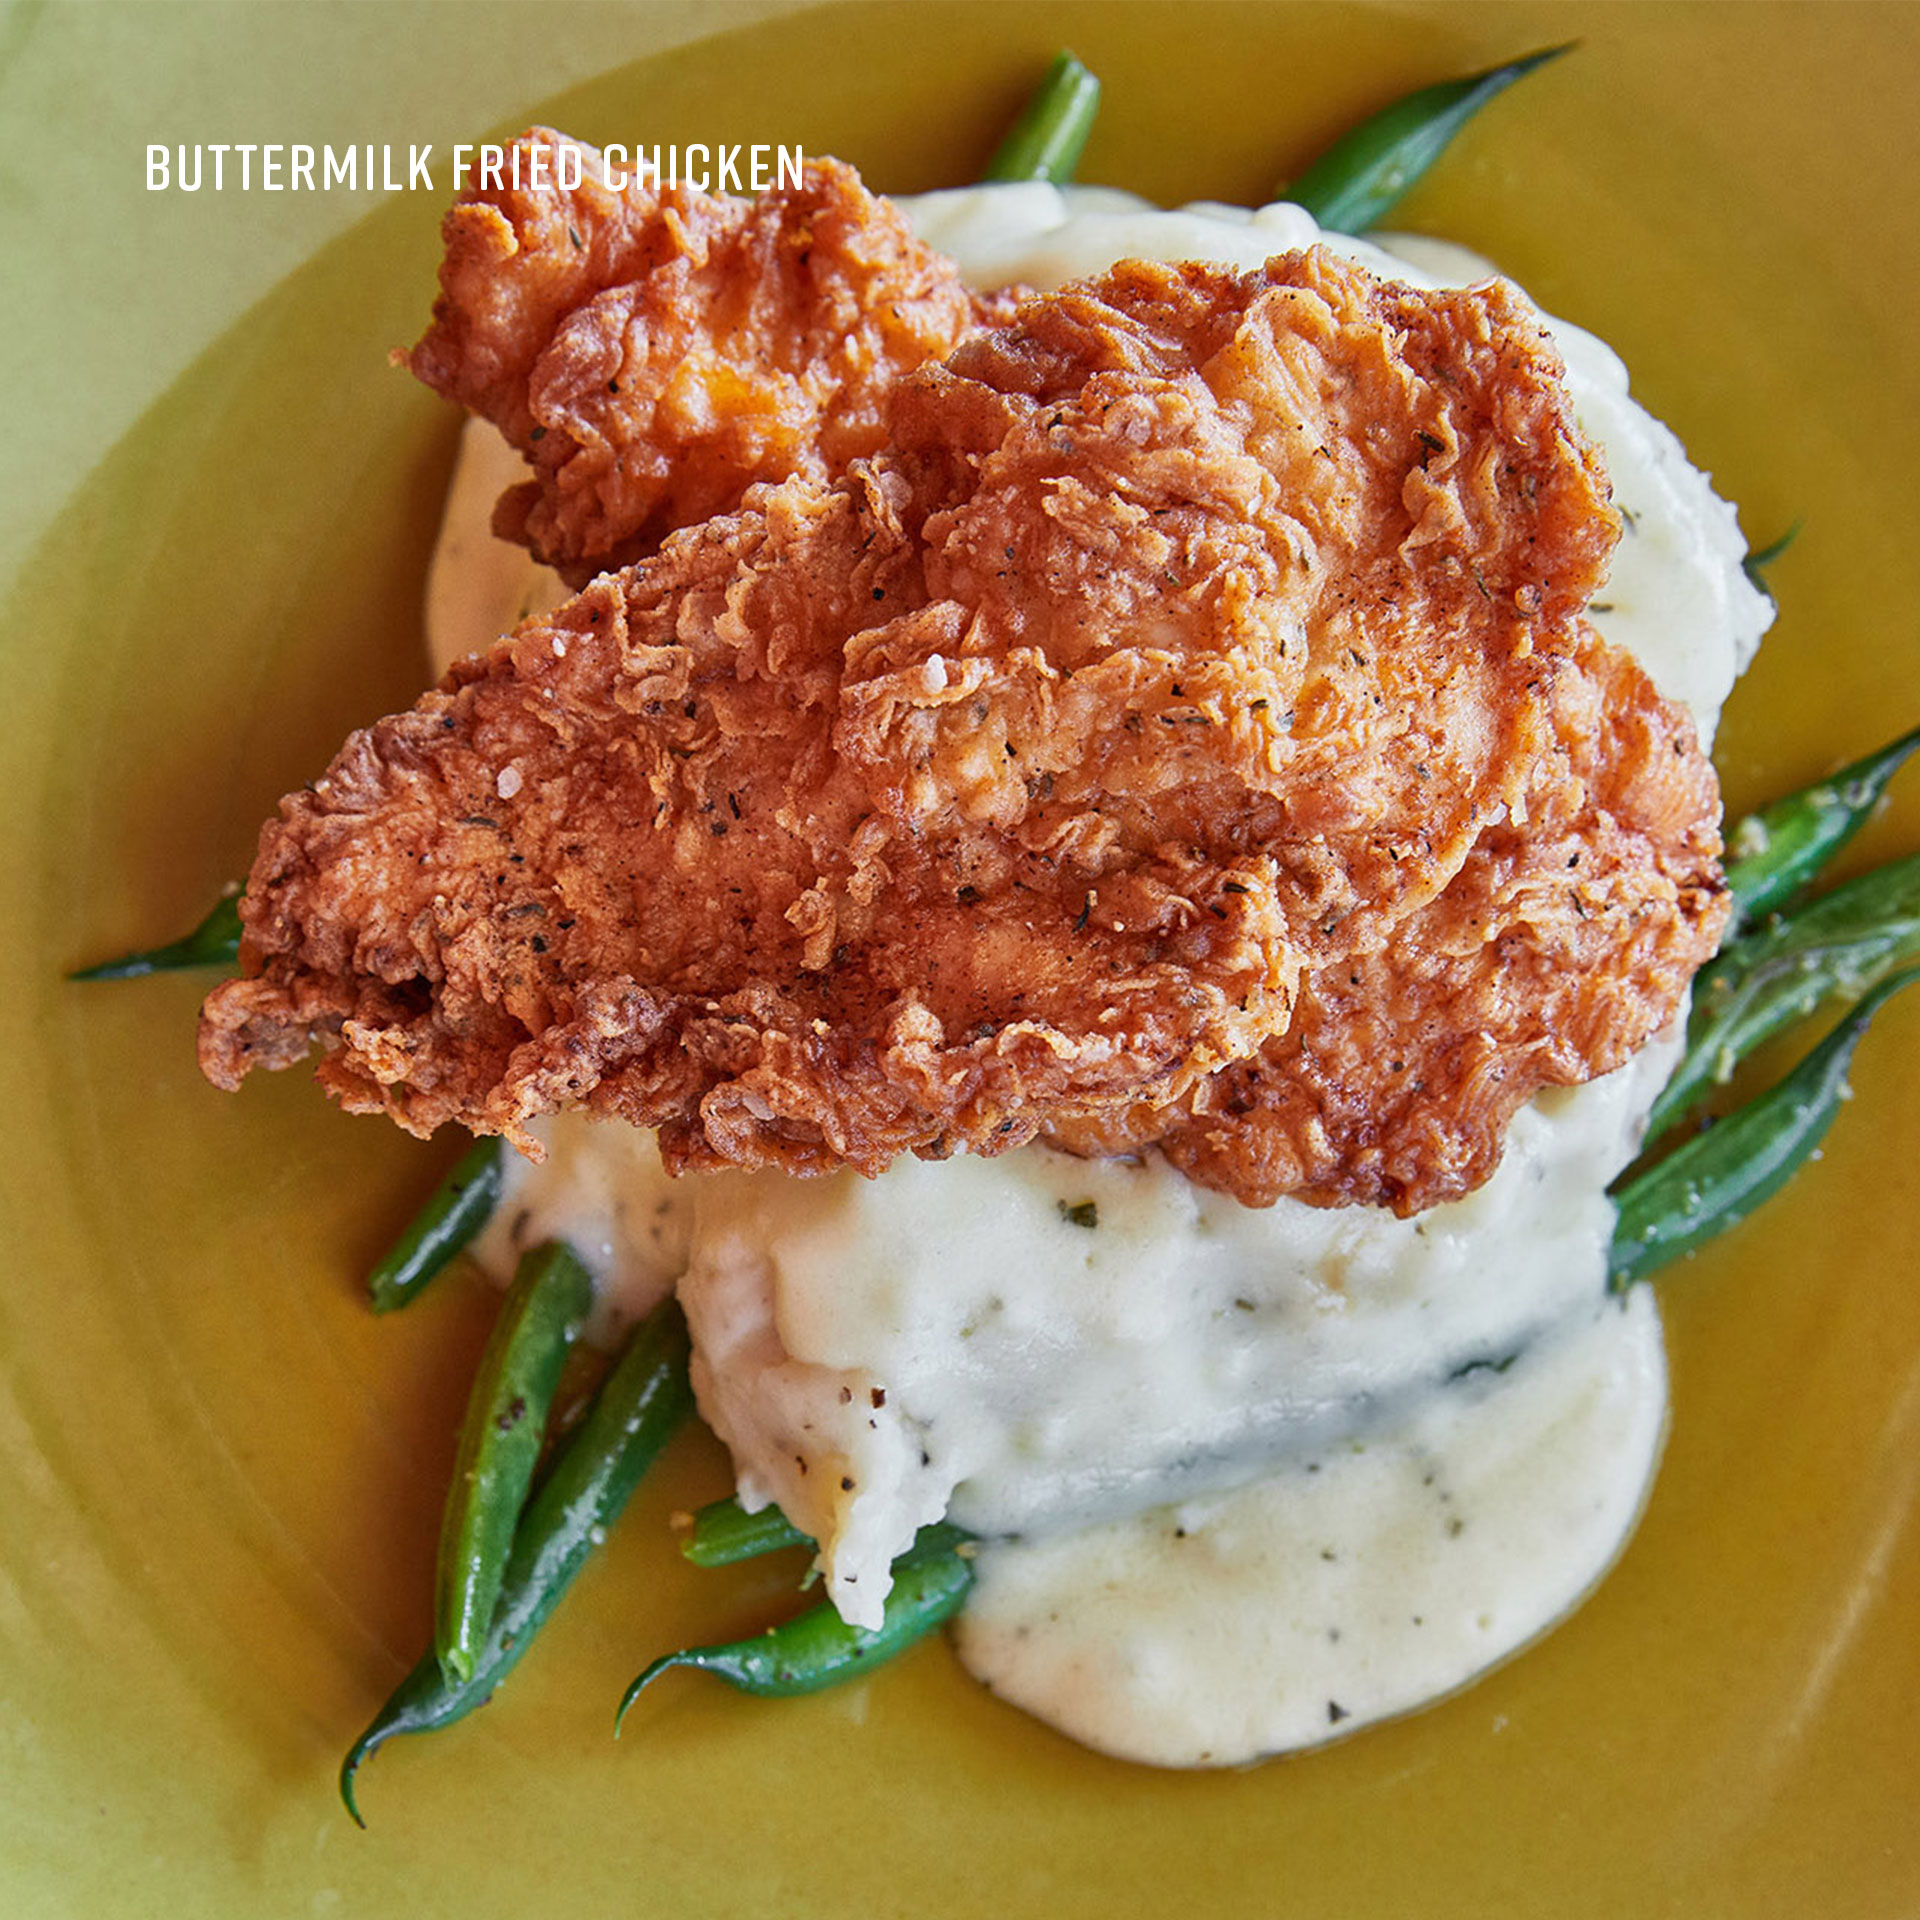 Our beautifully plated Buttermilk Fried Chicken on top of fresh sides